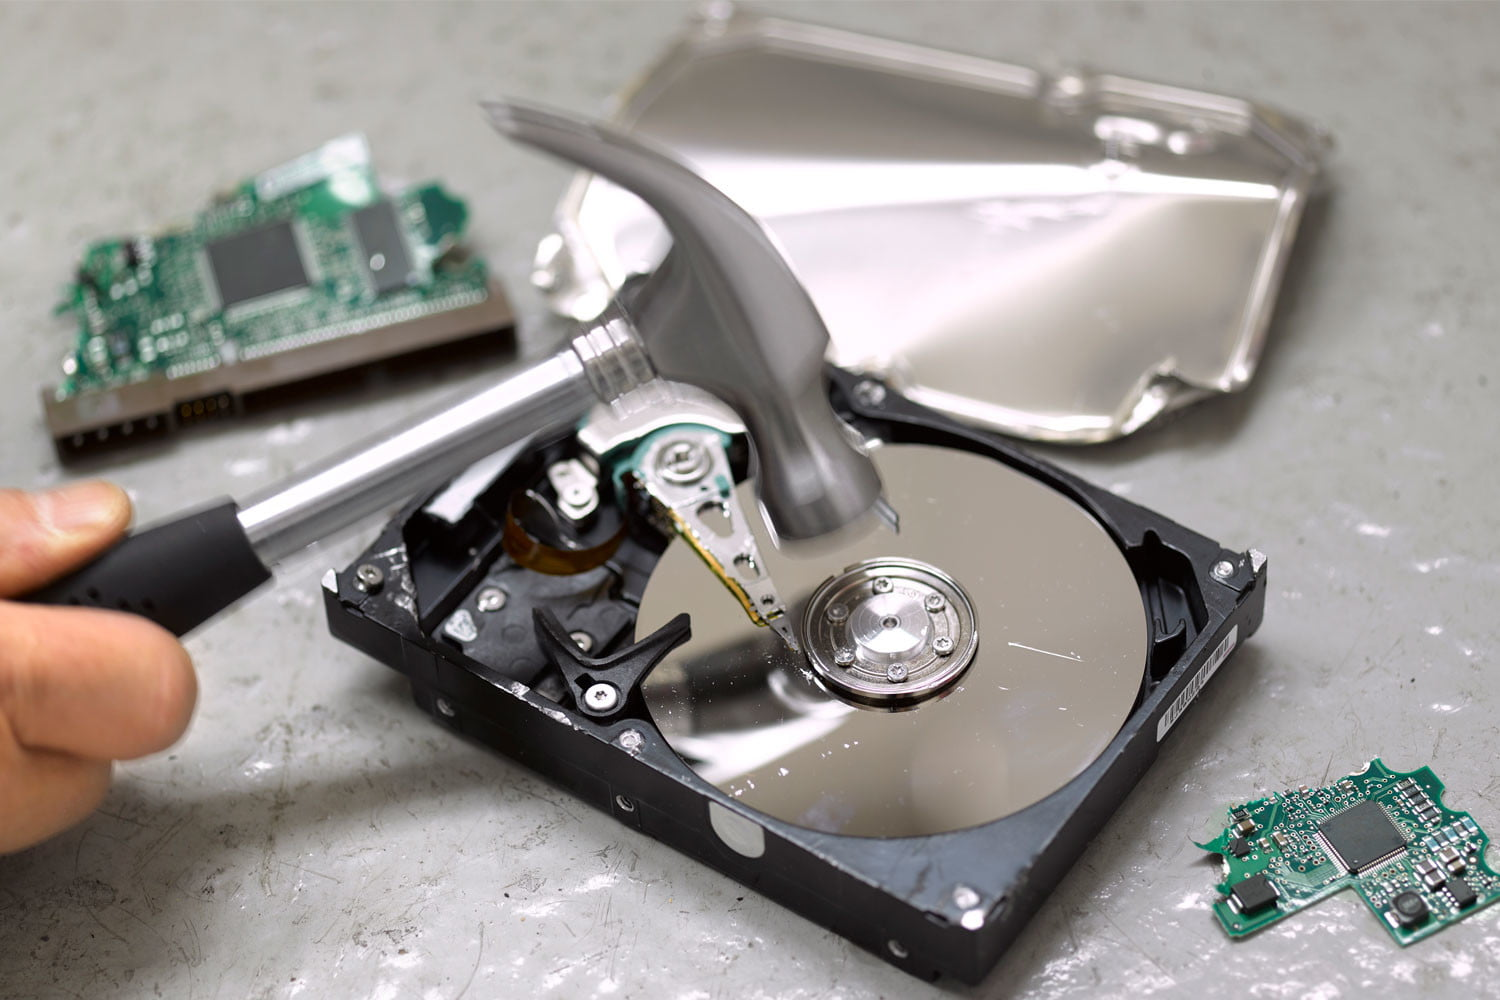 How to Wipe a Hard Drive | Digital Trends